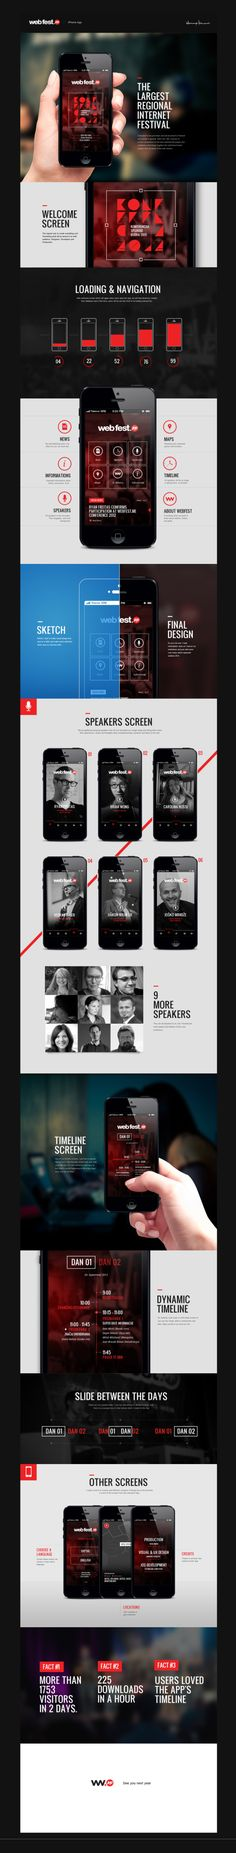 WebFest - #iPhone #App by Nemanja Ivanovic, via #Behance #UI #Mobile